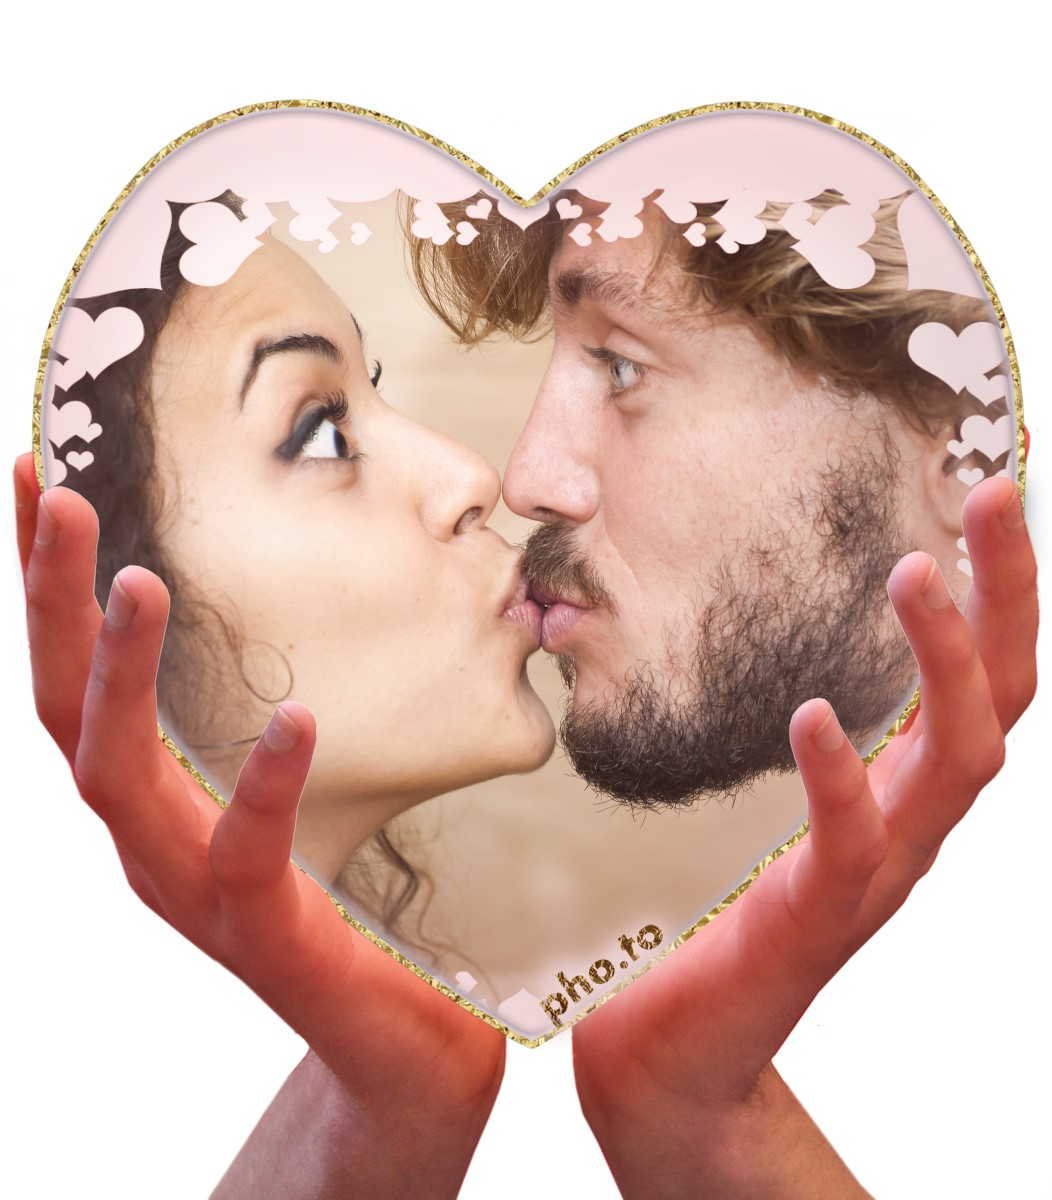 A nice romantic ecard with a kissing couple's photo in a heart shaped frame.